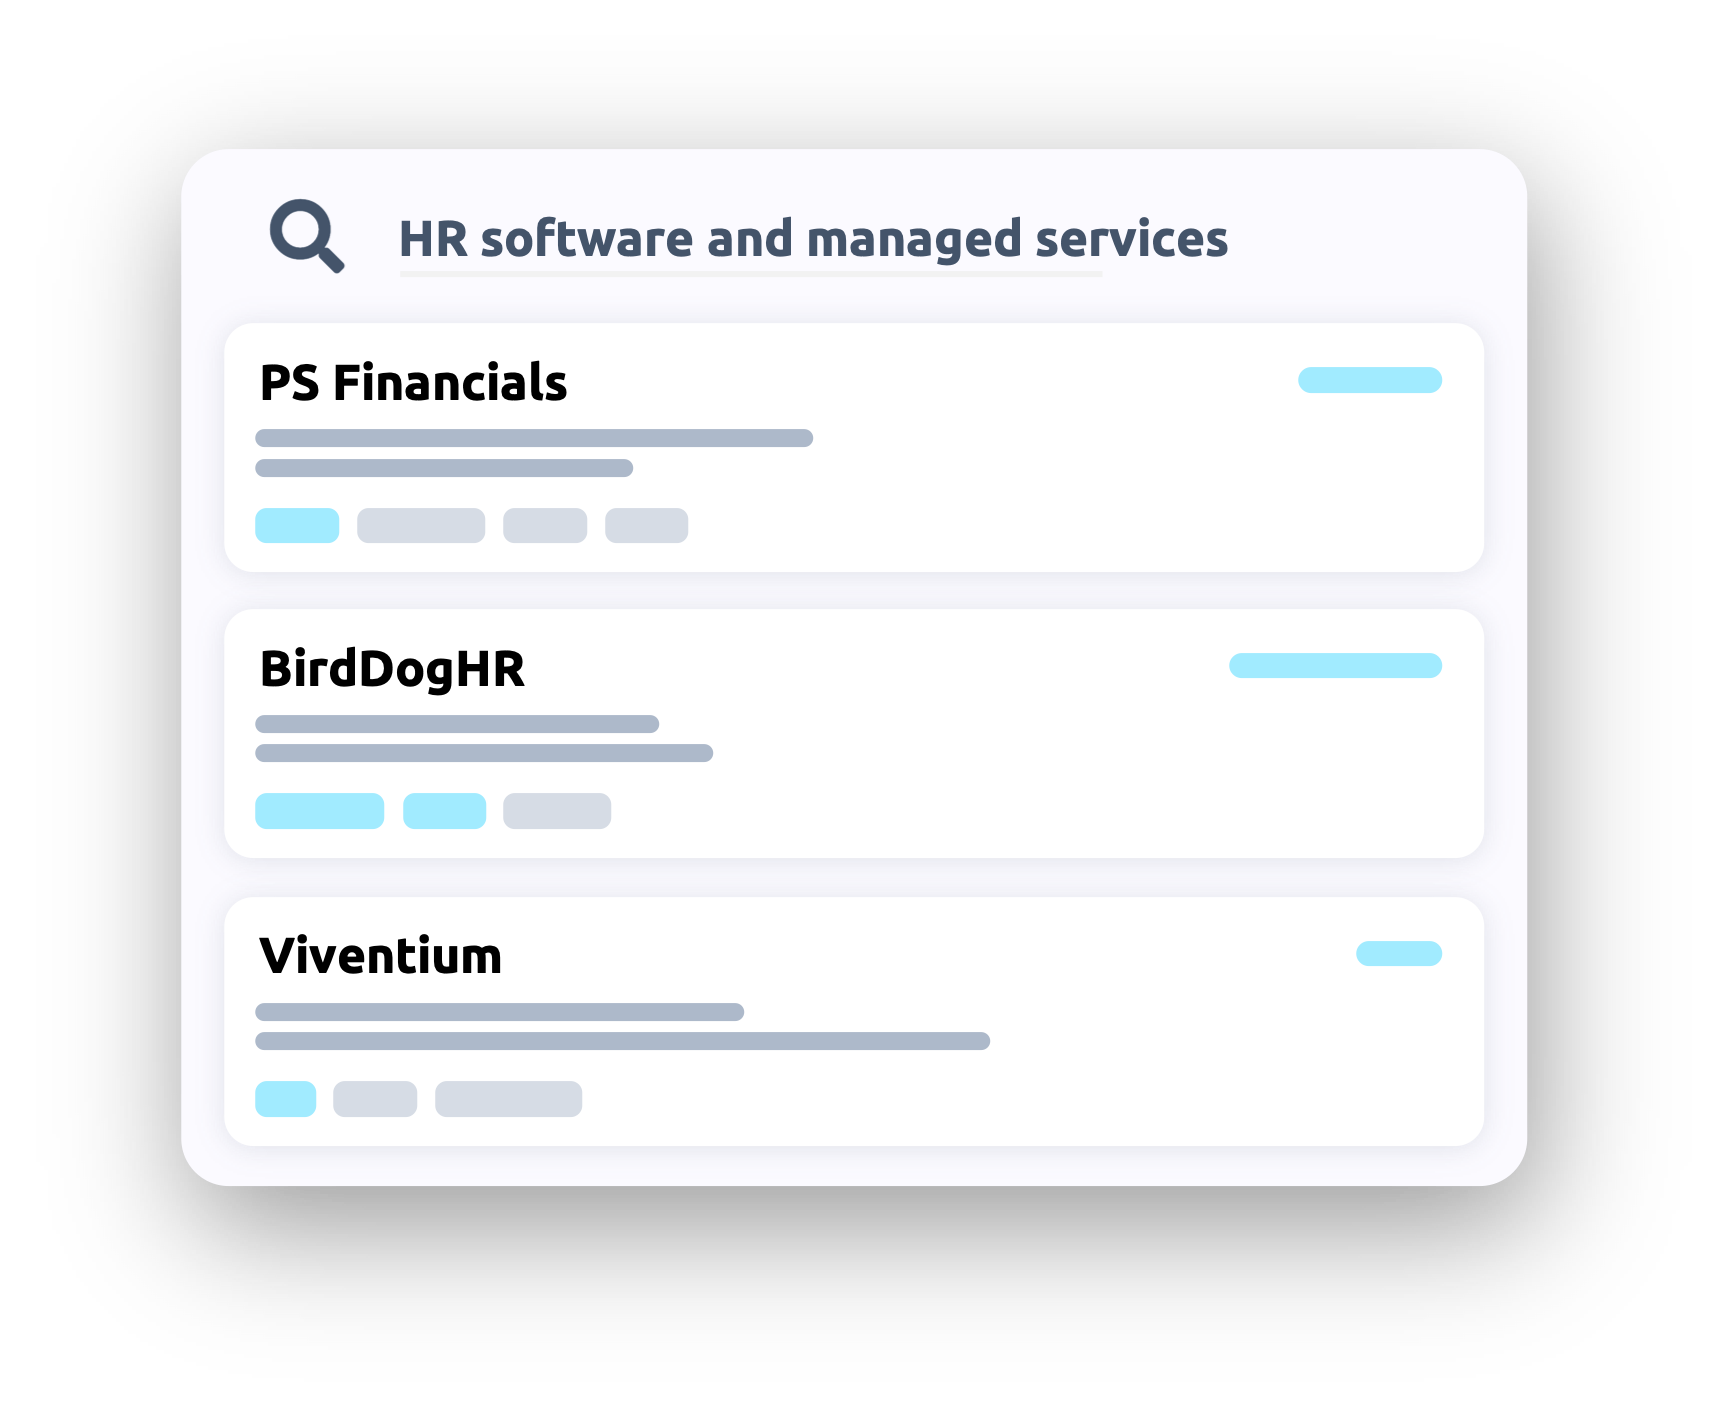 HR software and managed services